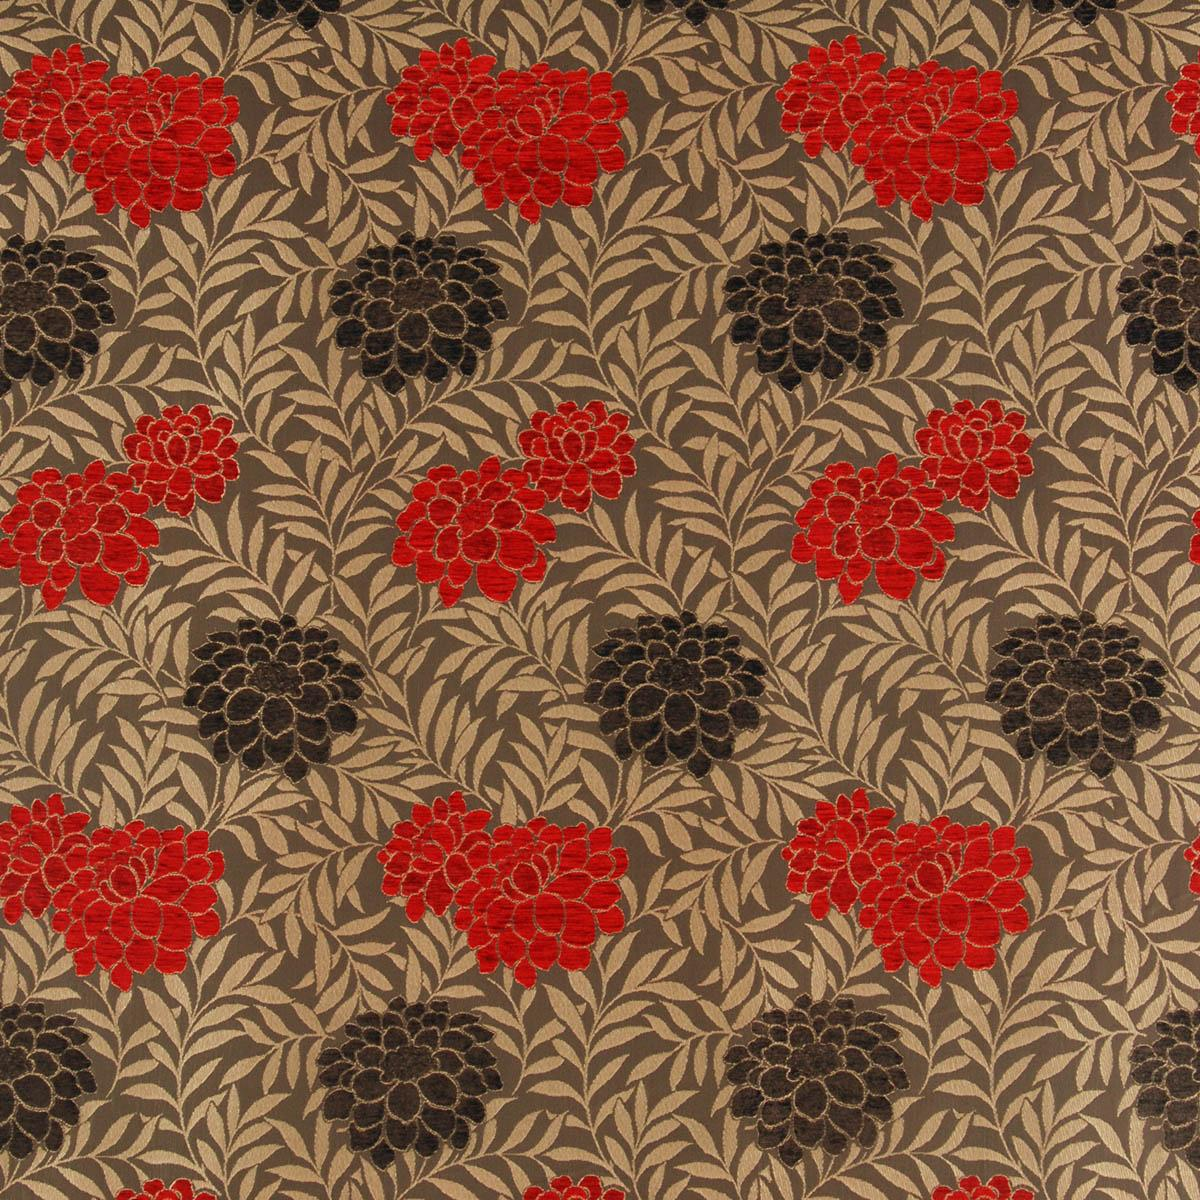 Curtain Fabric Red Chocolate Malham Curtain Fabric Free Uk Delivery Terrys